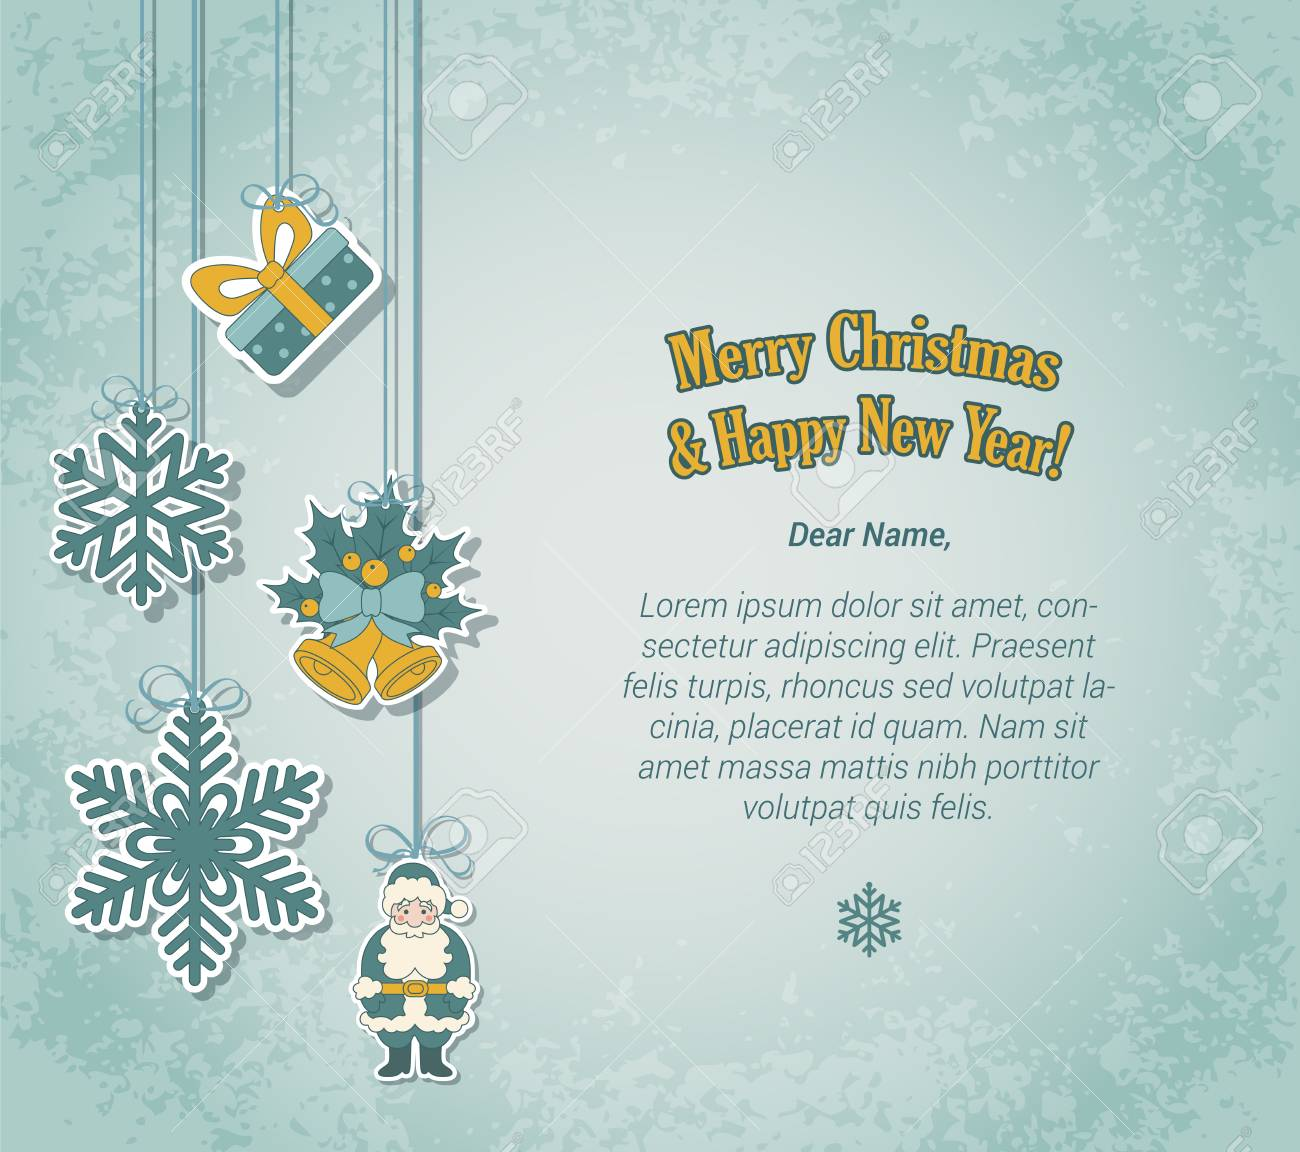 creative christmas and new year postcard template in sticker label style holiday tree decorations on